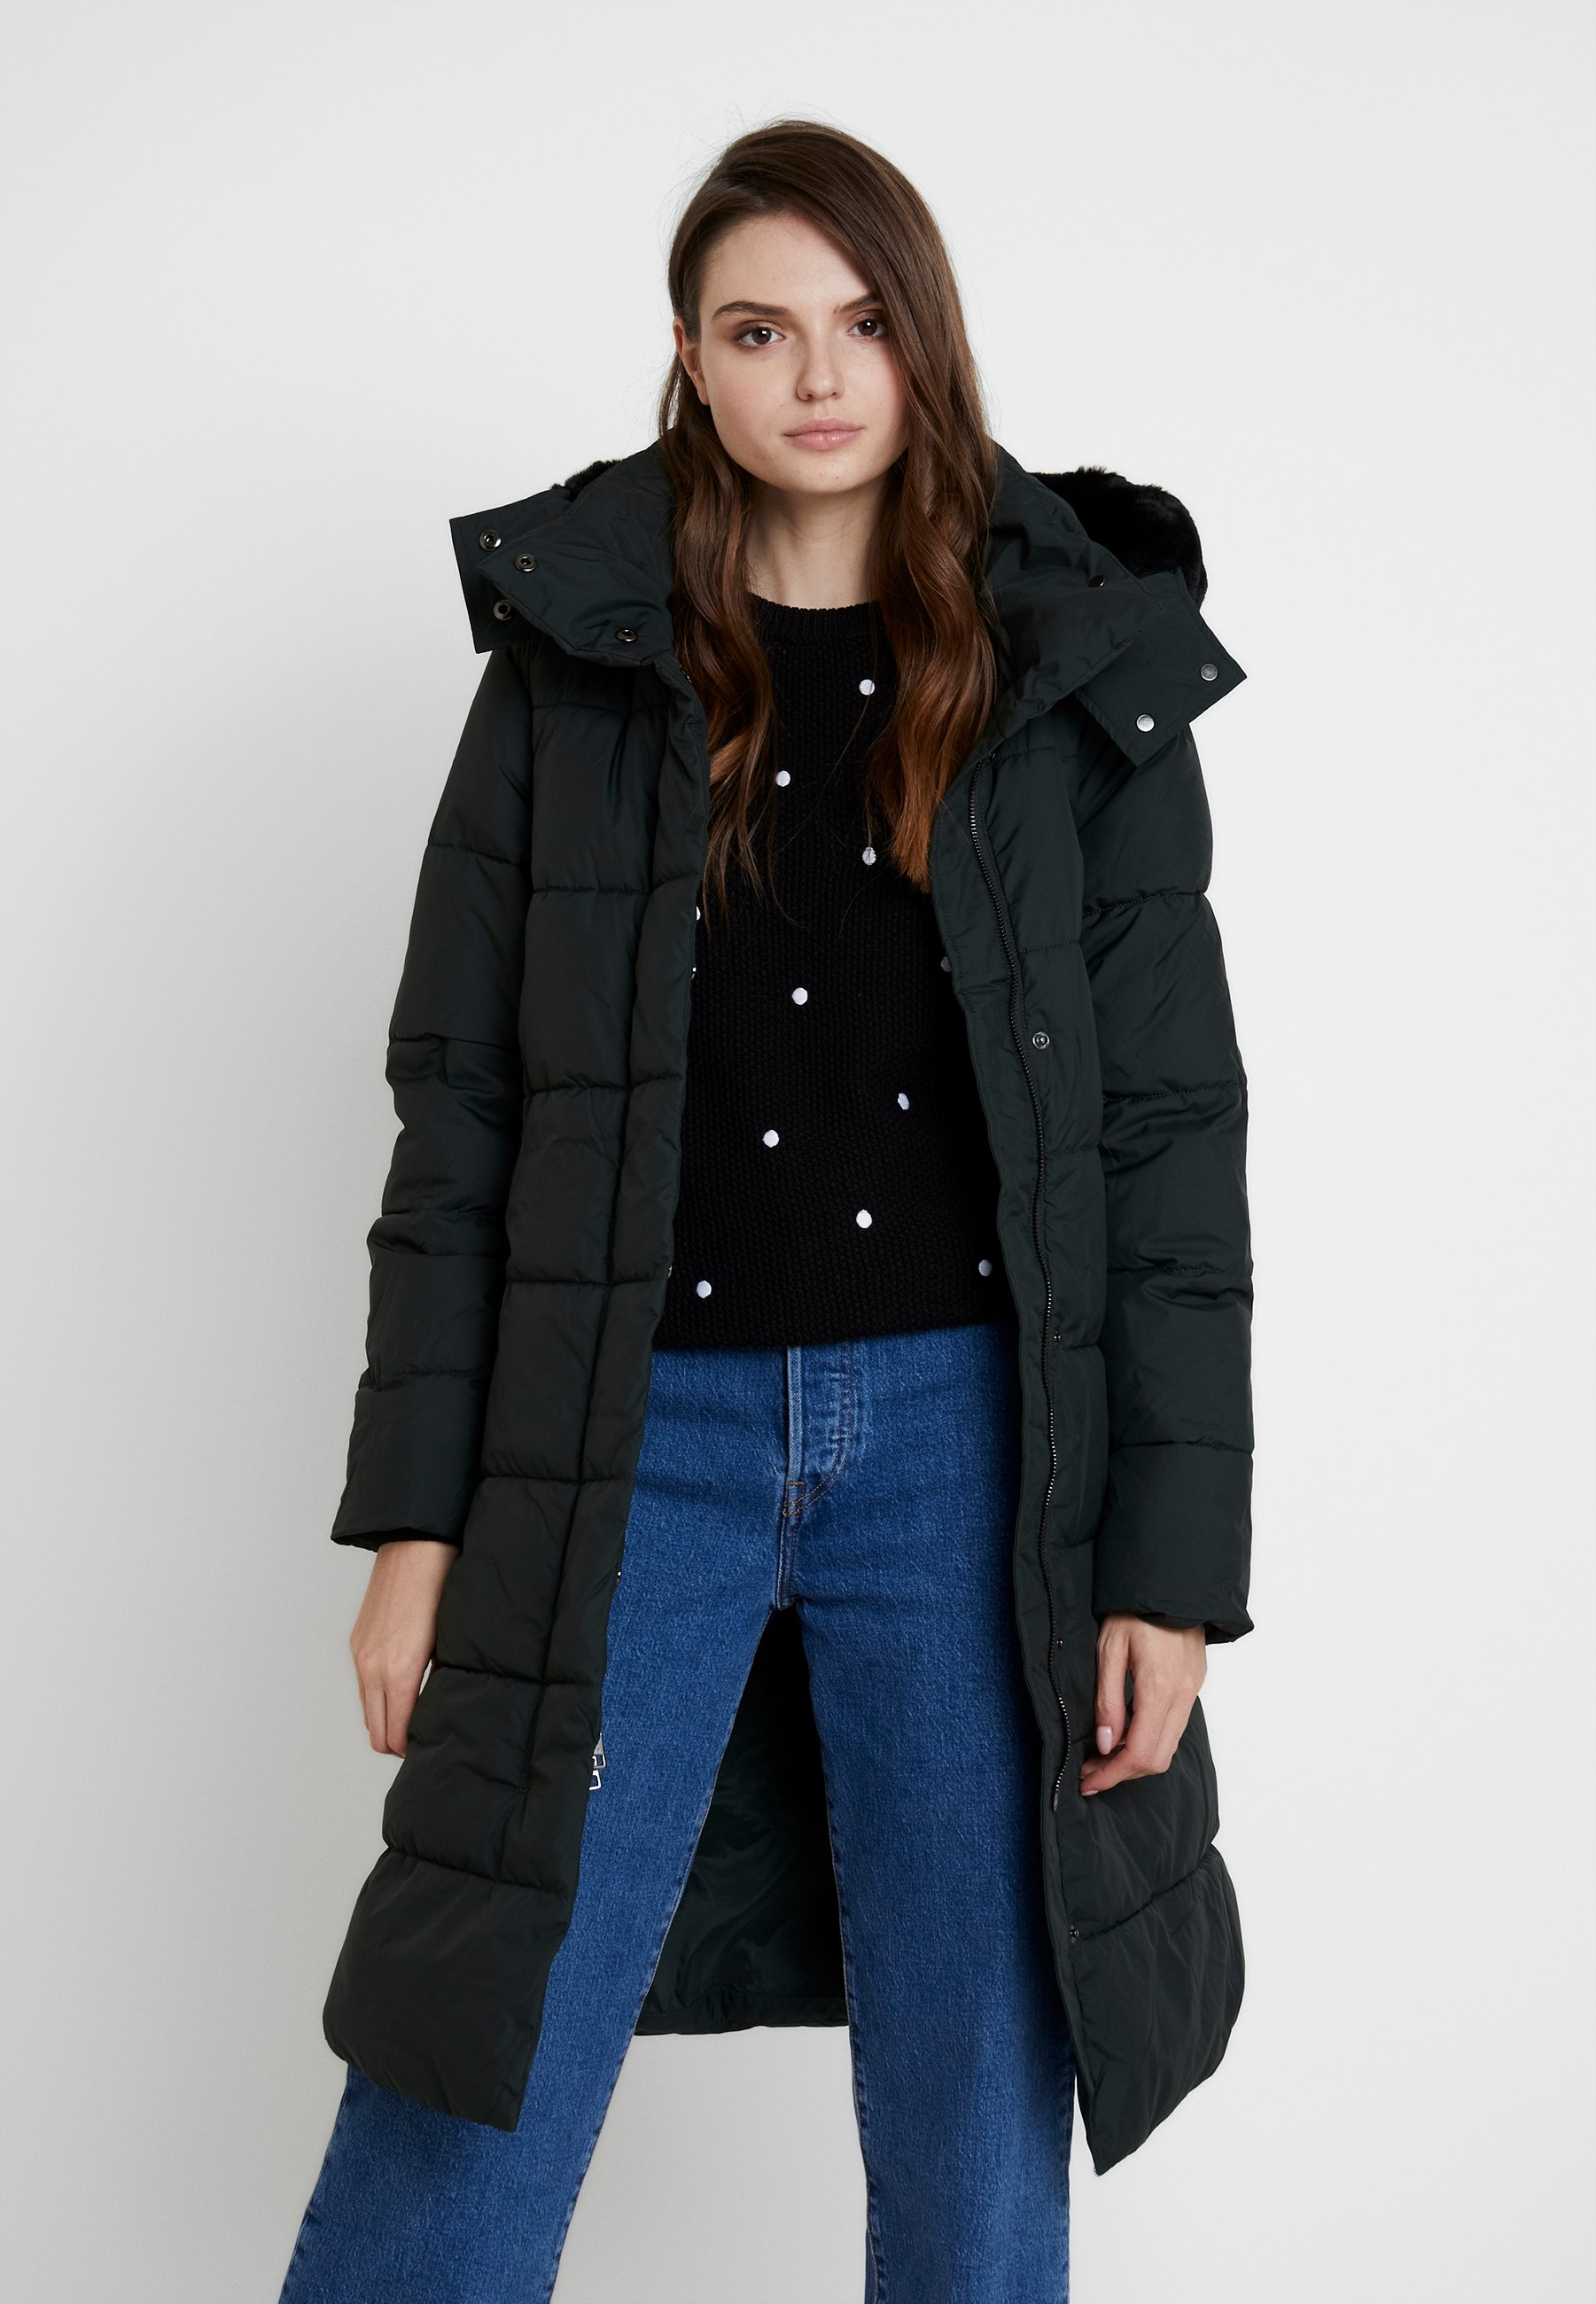 Truffle Trim Puffer Dark Fur Republic Long D'hiver Banana HoodVeste 0OnkwP